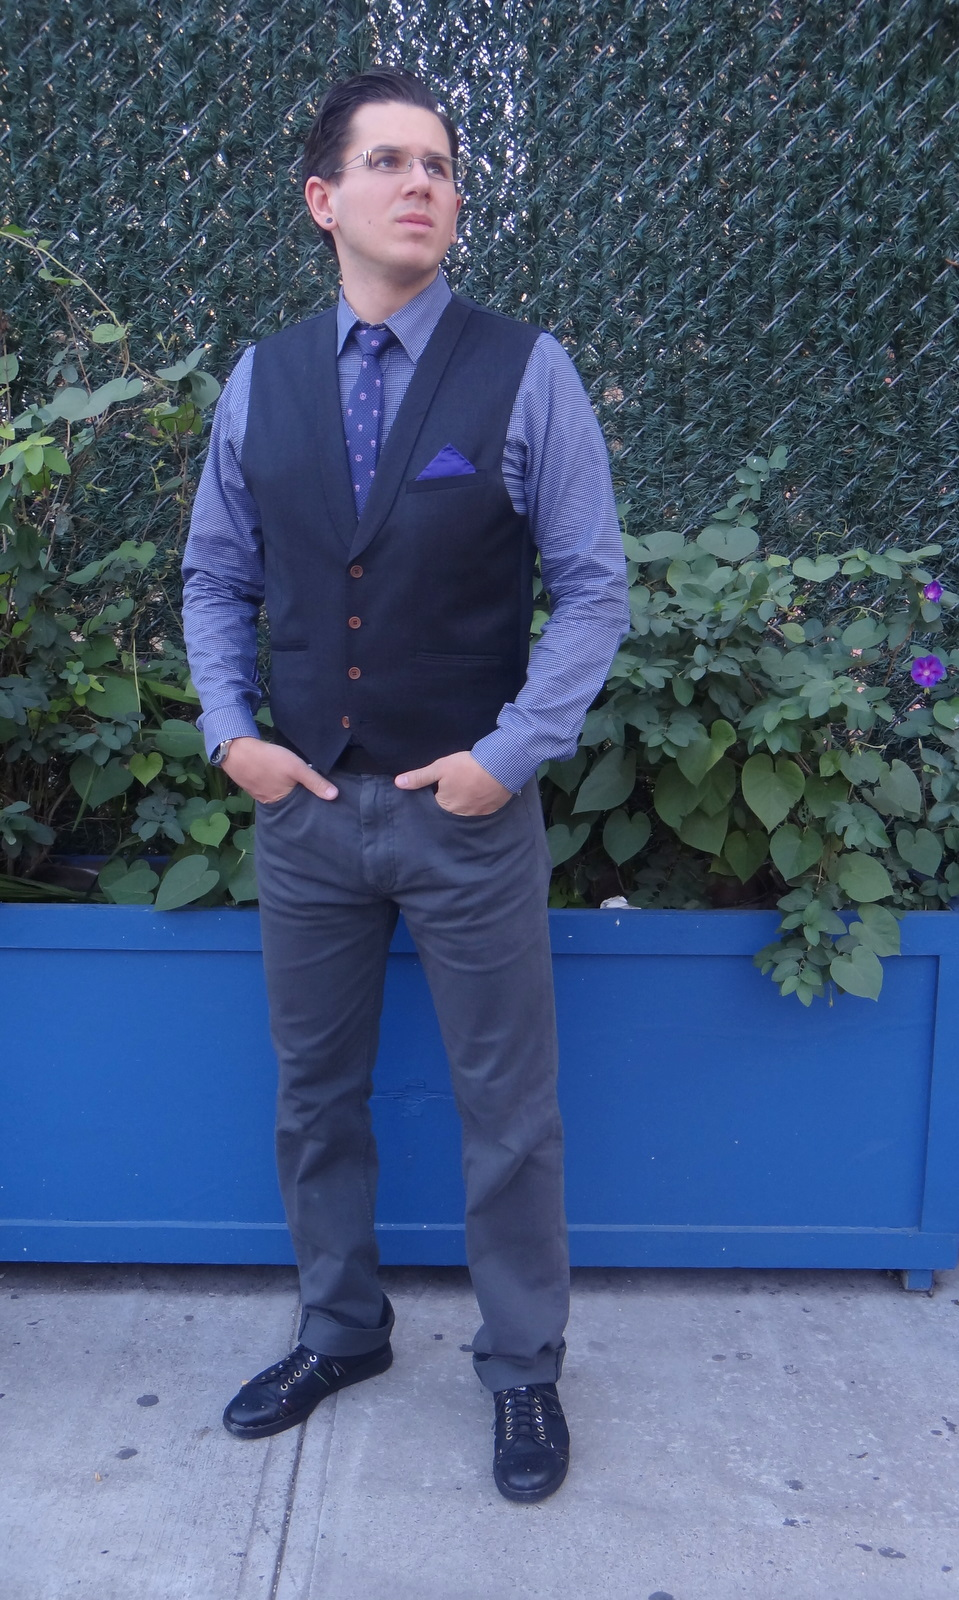 d9657a4414 Pocket square by Thomas Pink  Vest by Ted Baker  Shirt by Nigel Hall  Pants  by Marc by Marc Jacobs  Sneakers by Paul Smith Jeans  Tie by Alexander  McQueen  ...